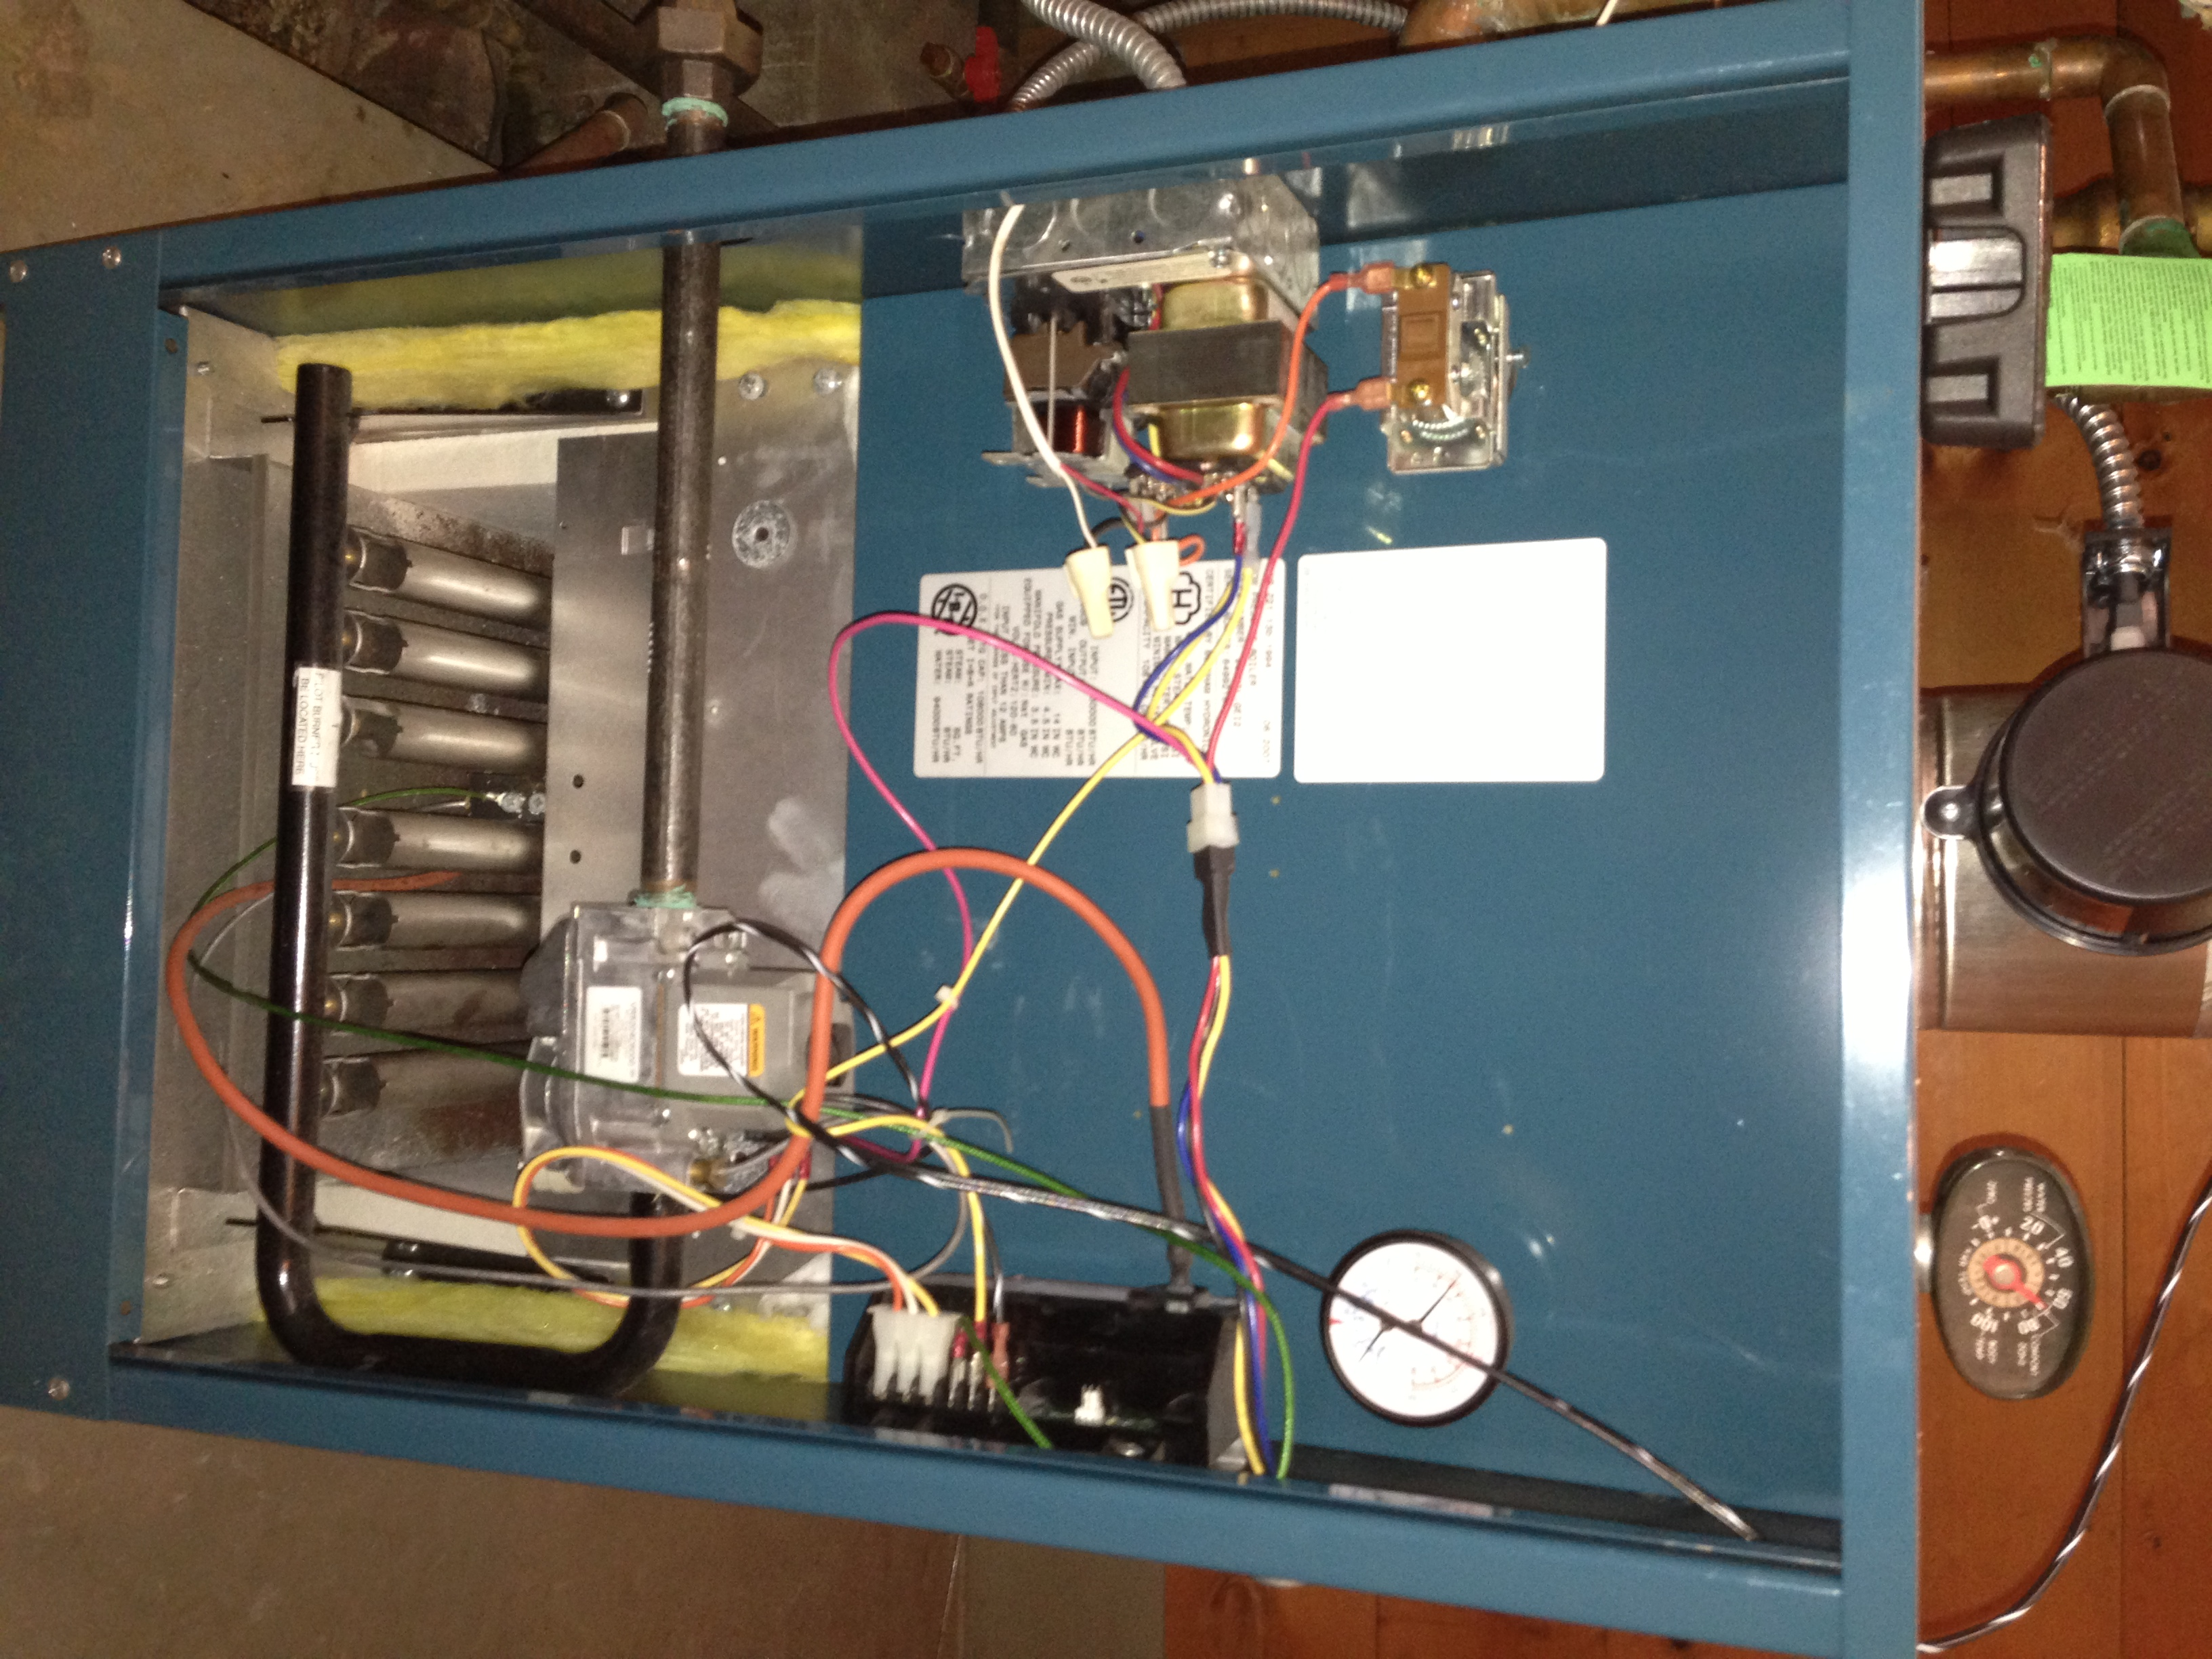 I have an old Honeywell thermostat (model T87F) that controls only ...